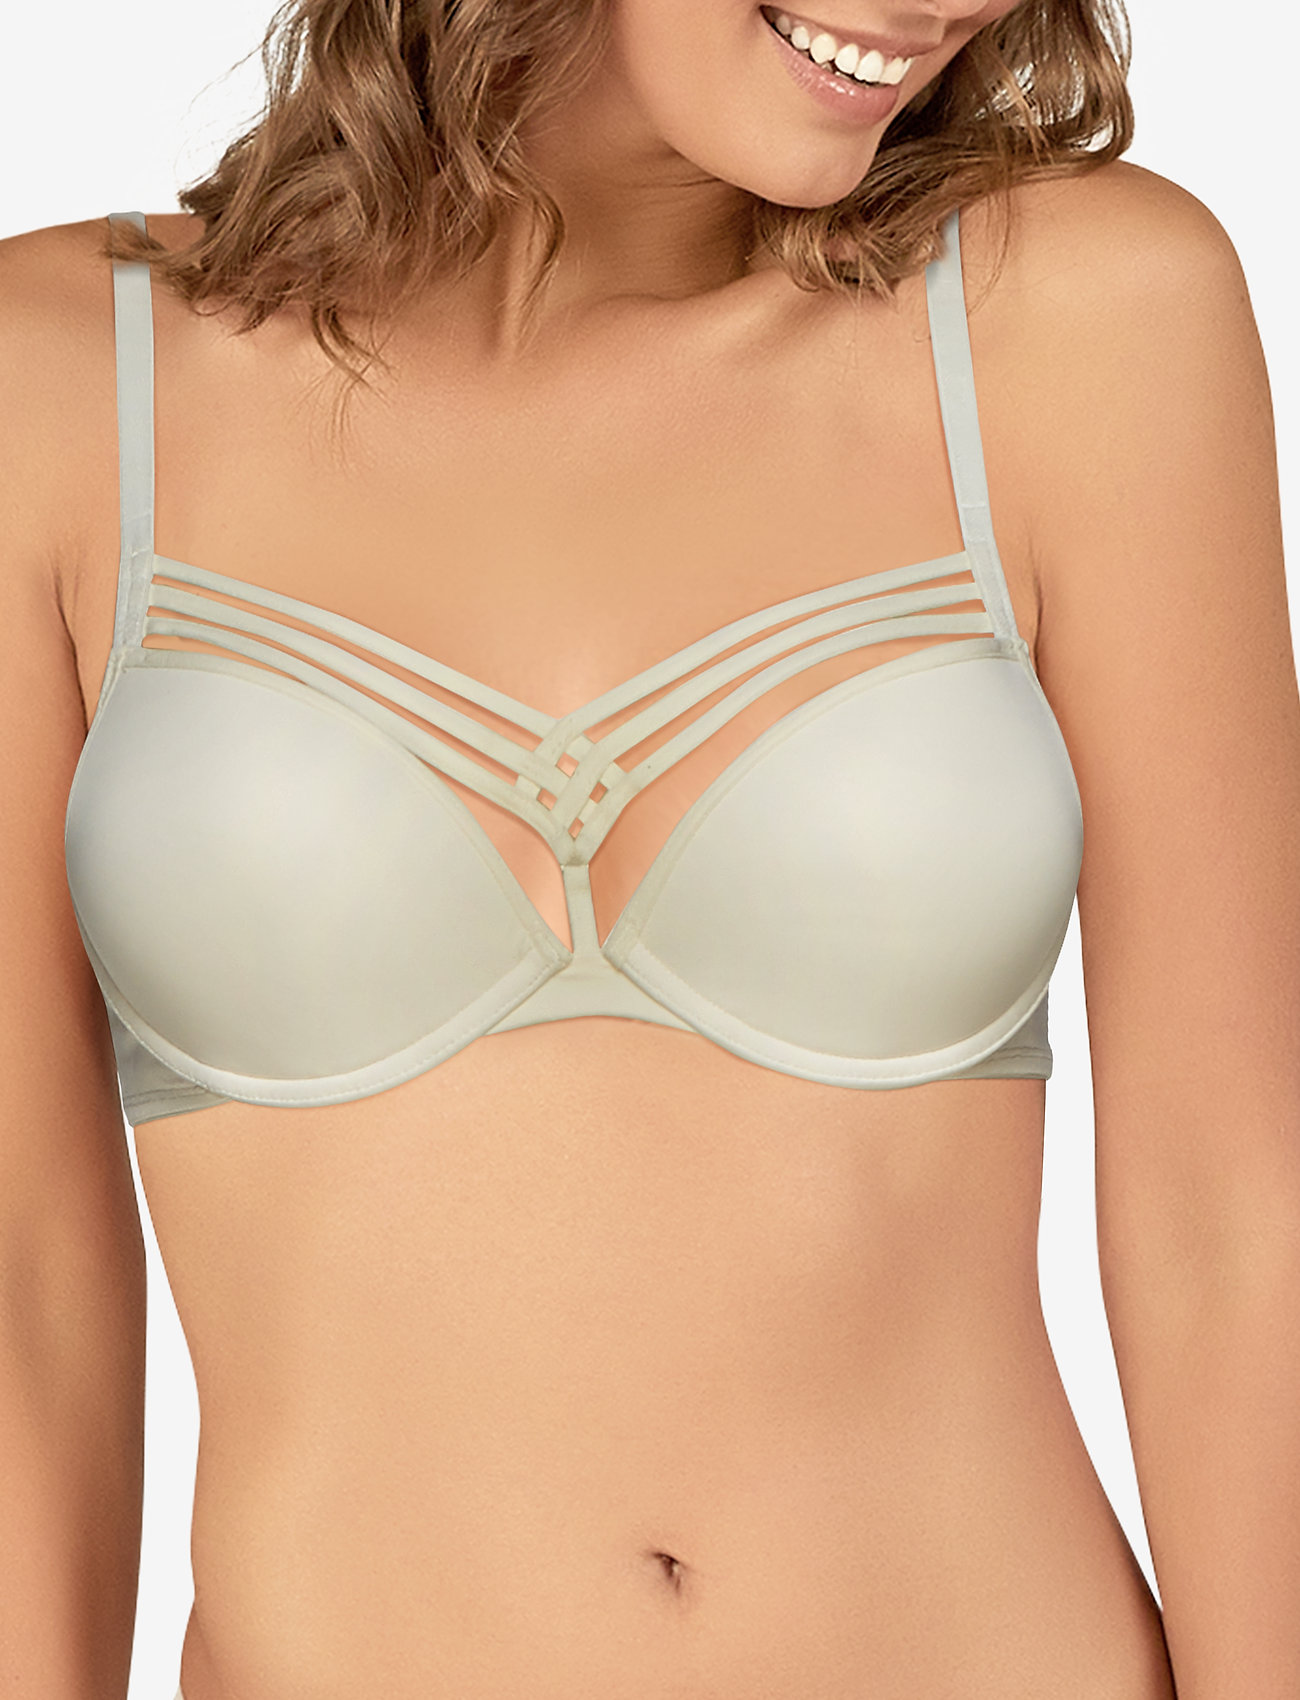 Marlies Dekkers MD D.DE PARIS PUSH UP IVORY - IVORY